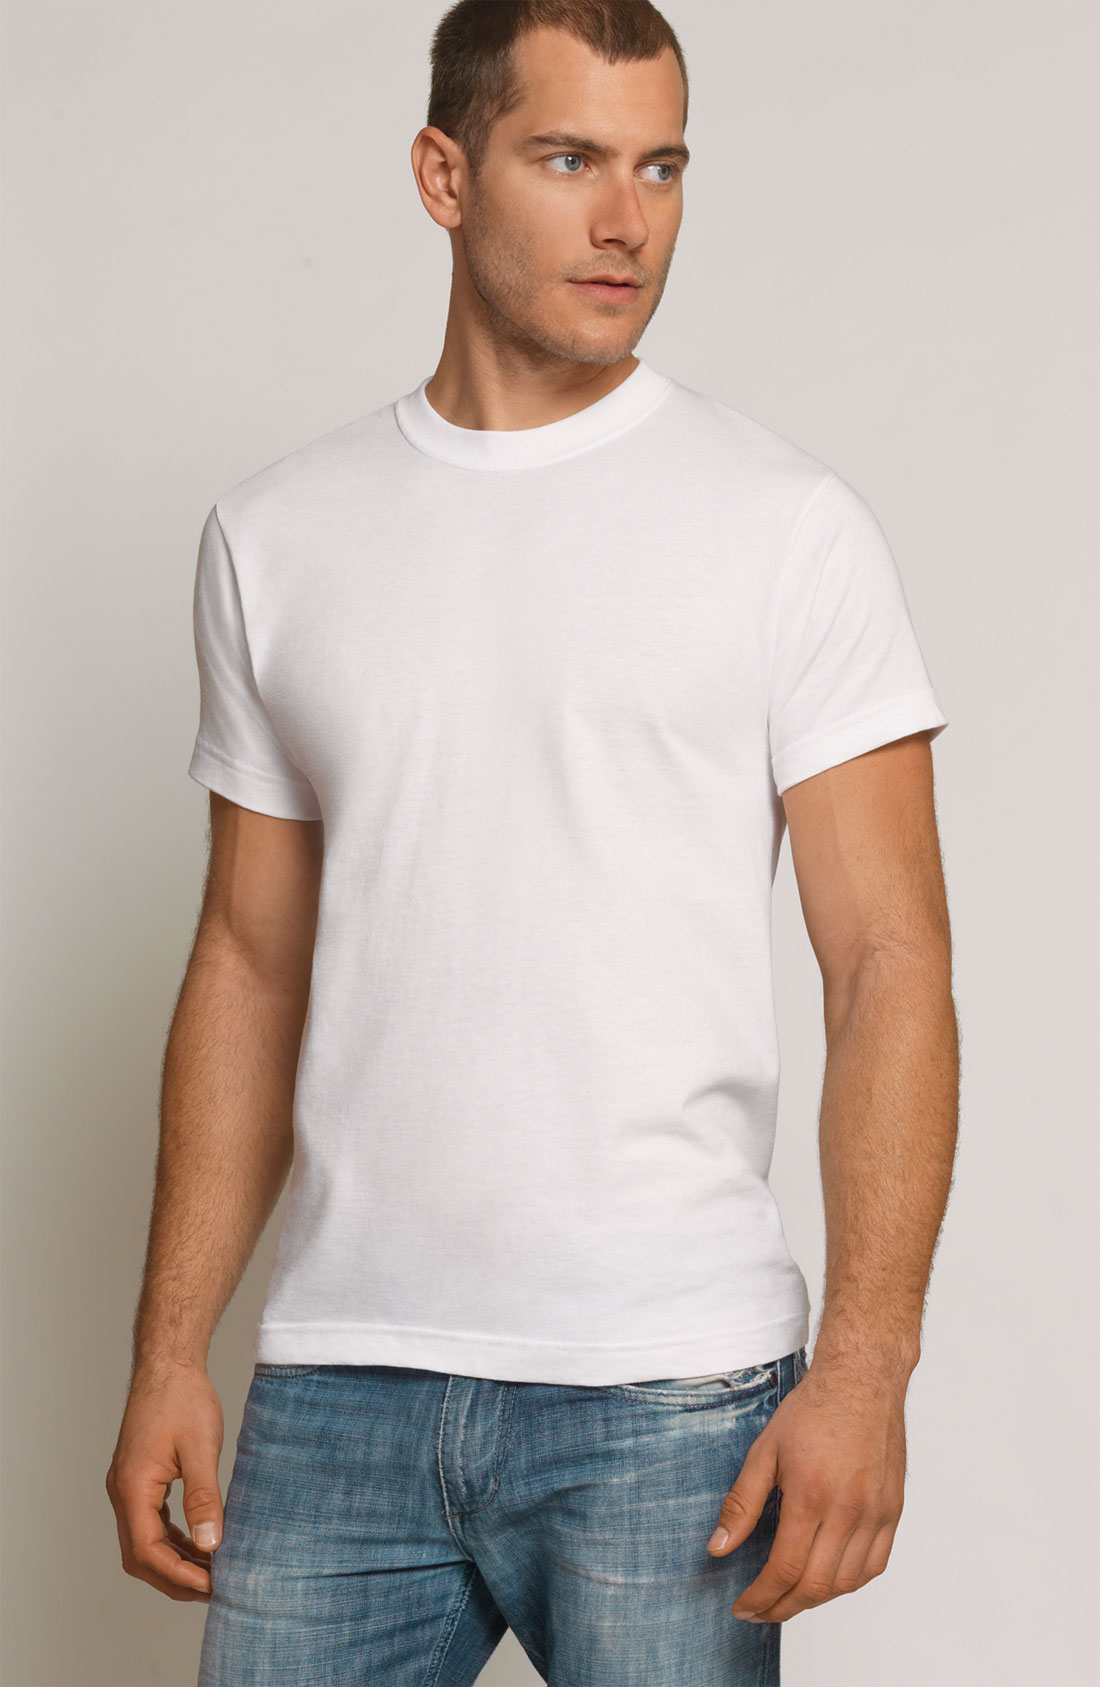 Coopers by jockey crewneck t shirt in white for men lyst for Jockey t shirts sale